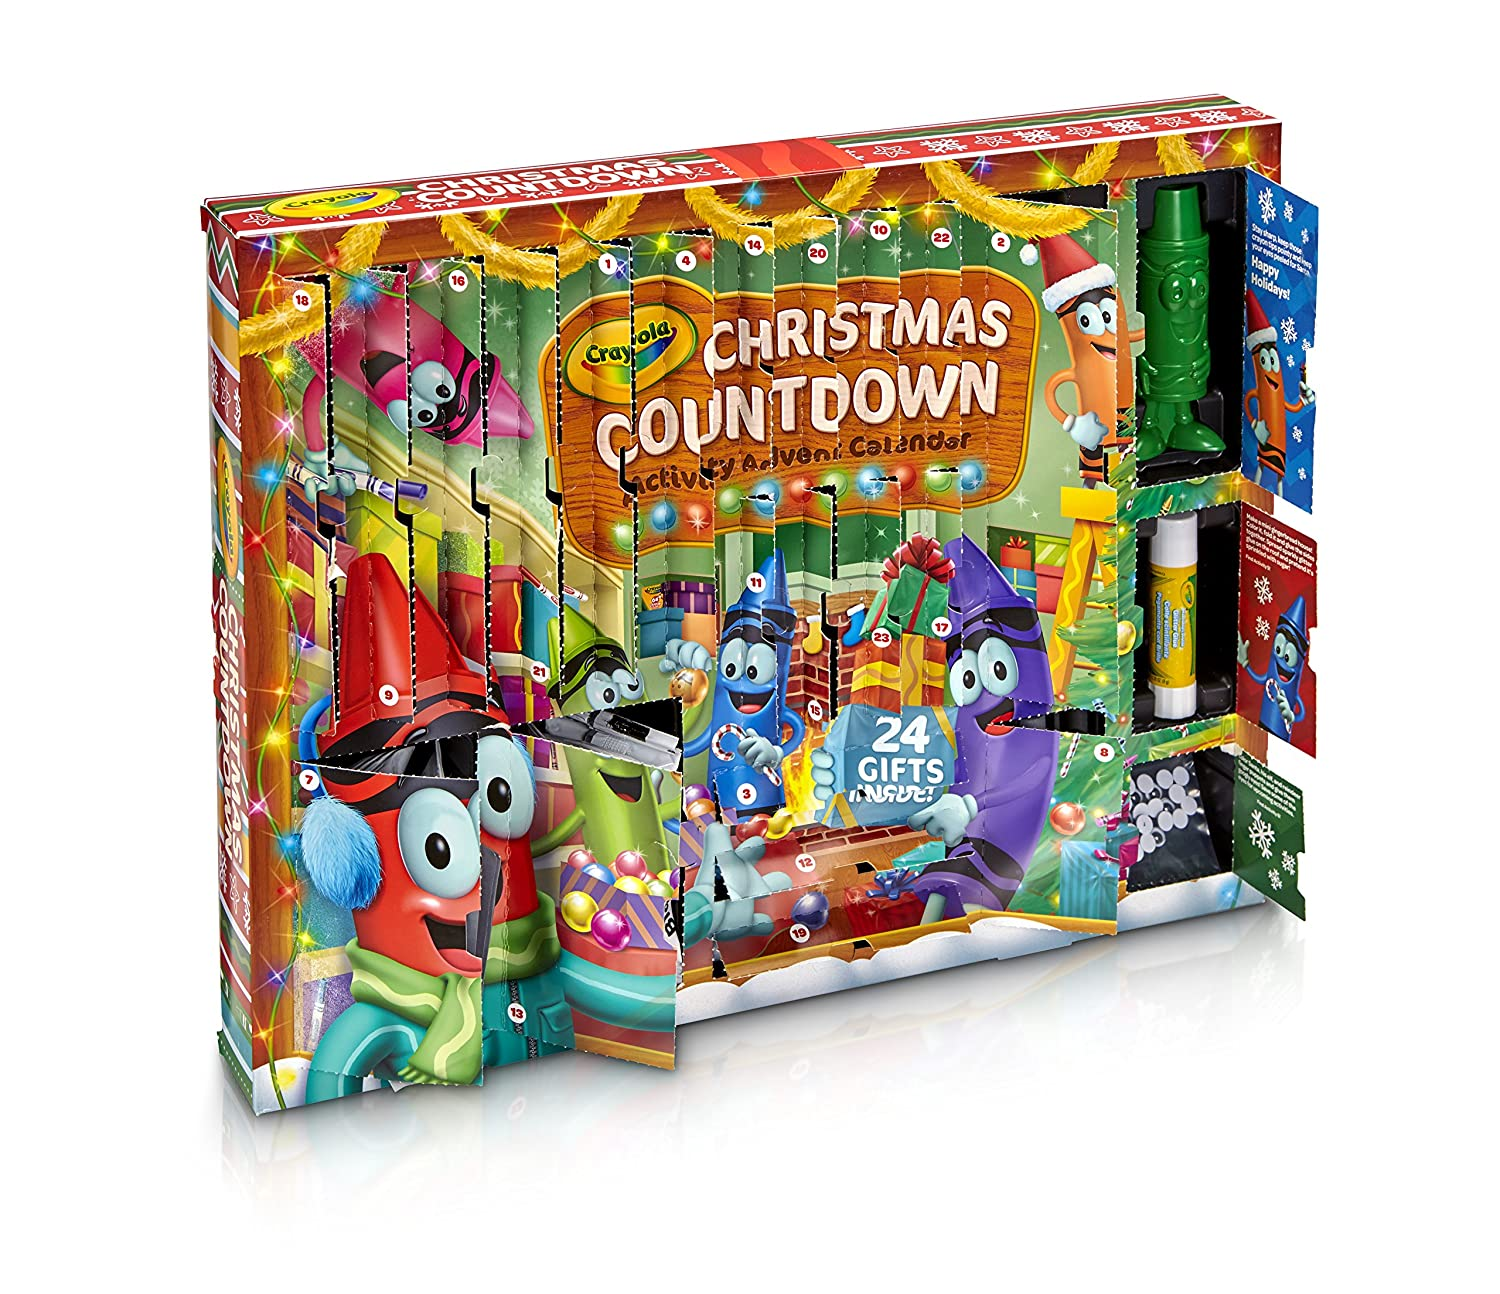 Amazoncom Crayola Christmas Countdown Activity Advent Calendar Toys & Games